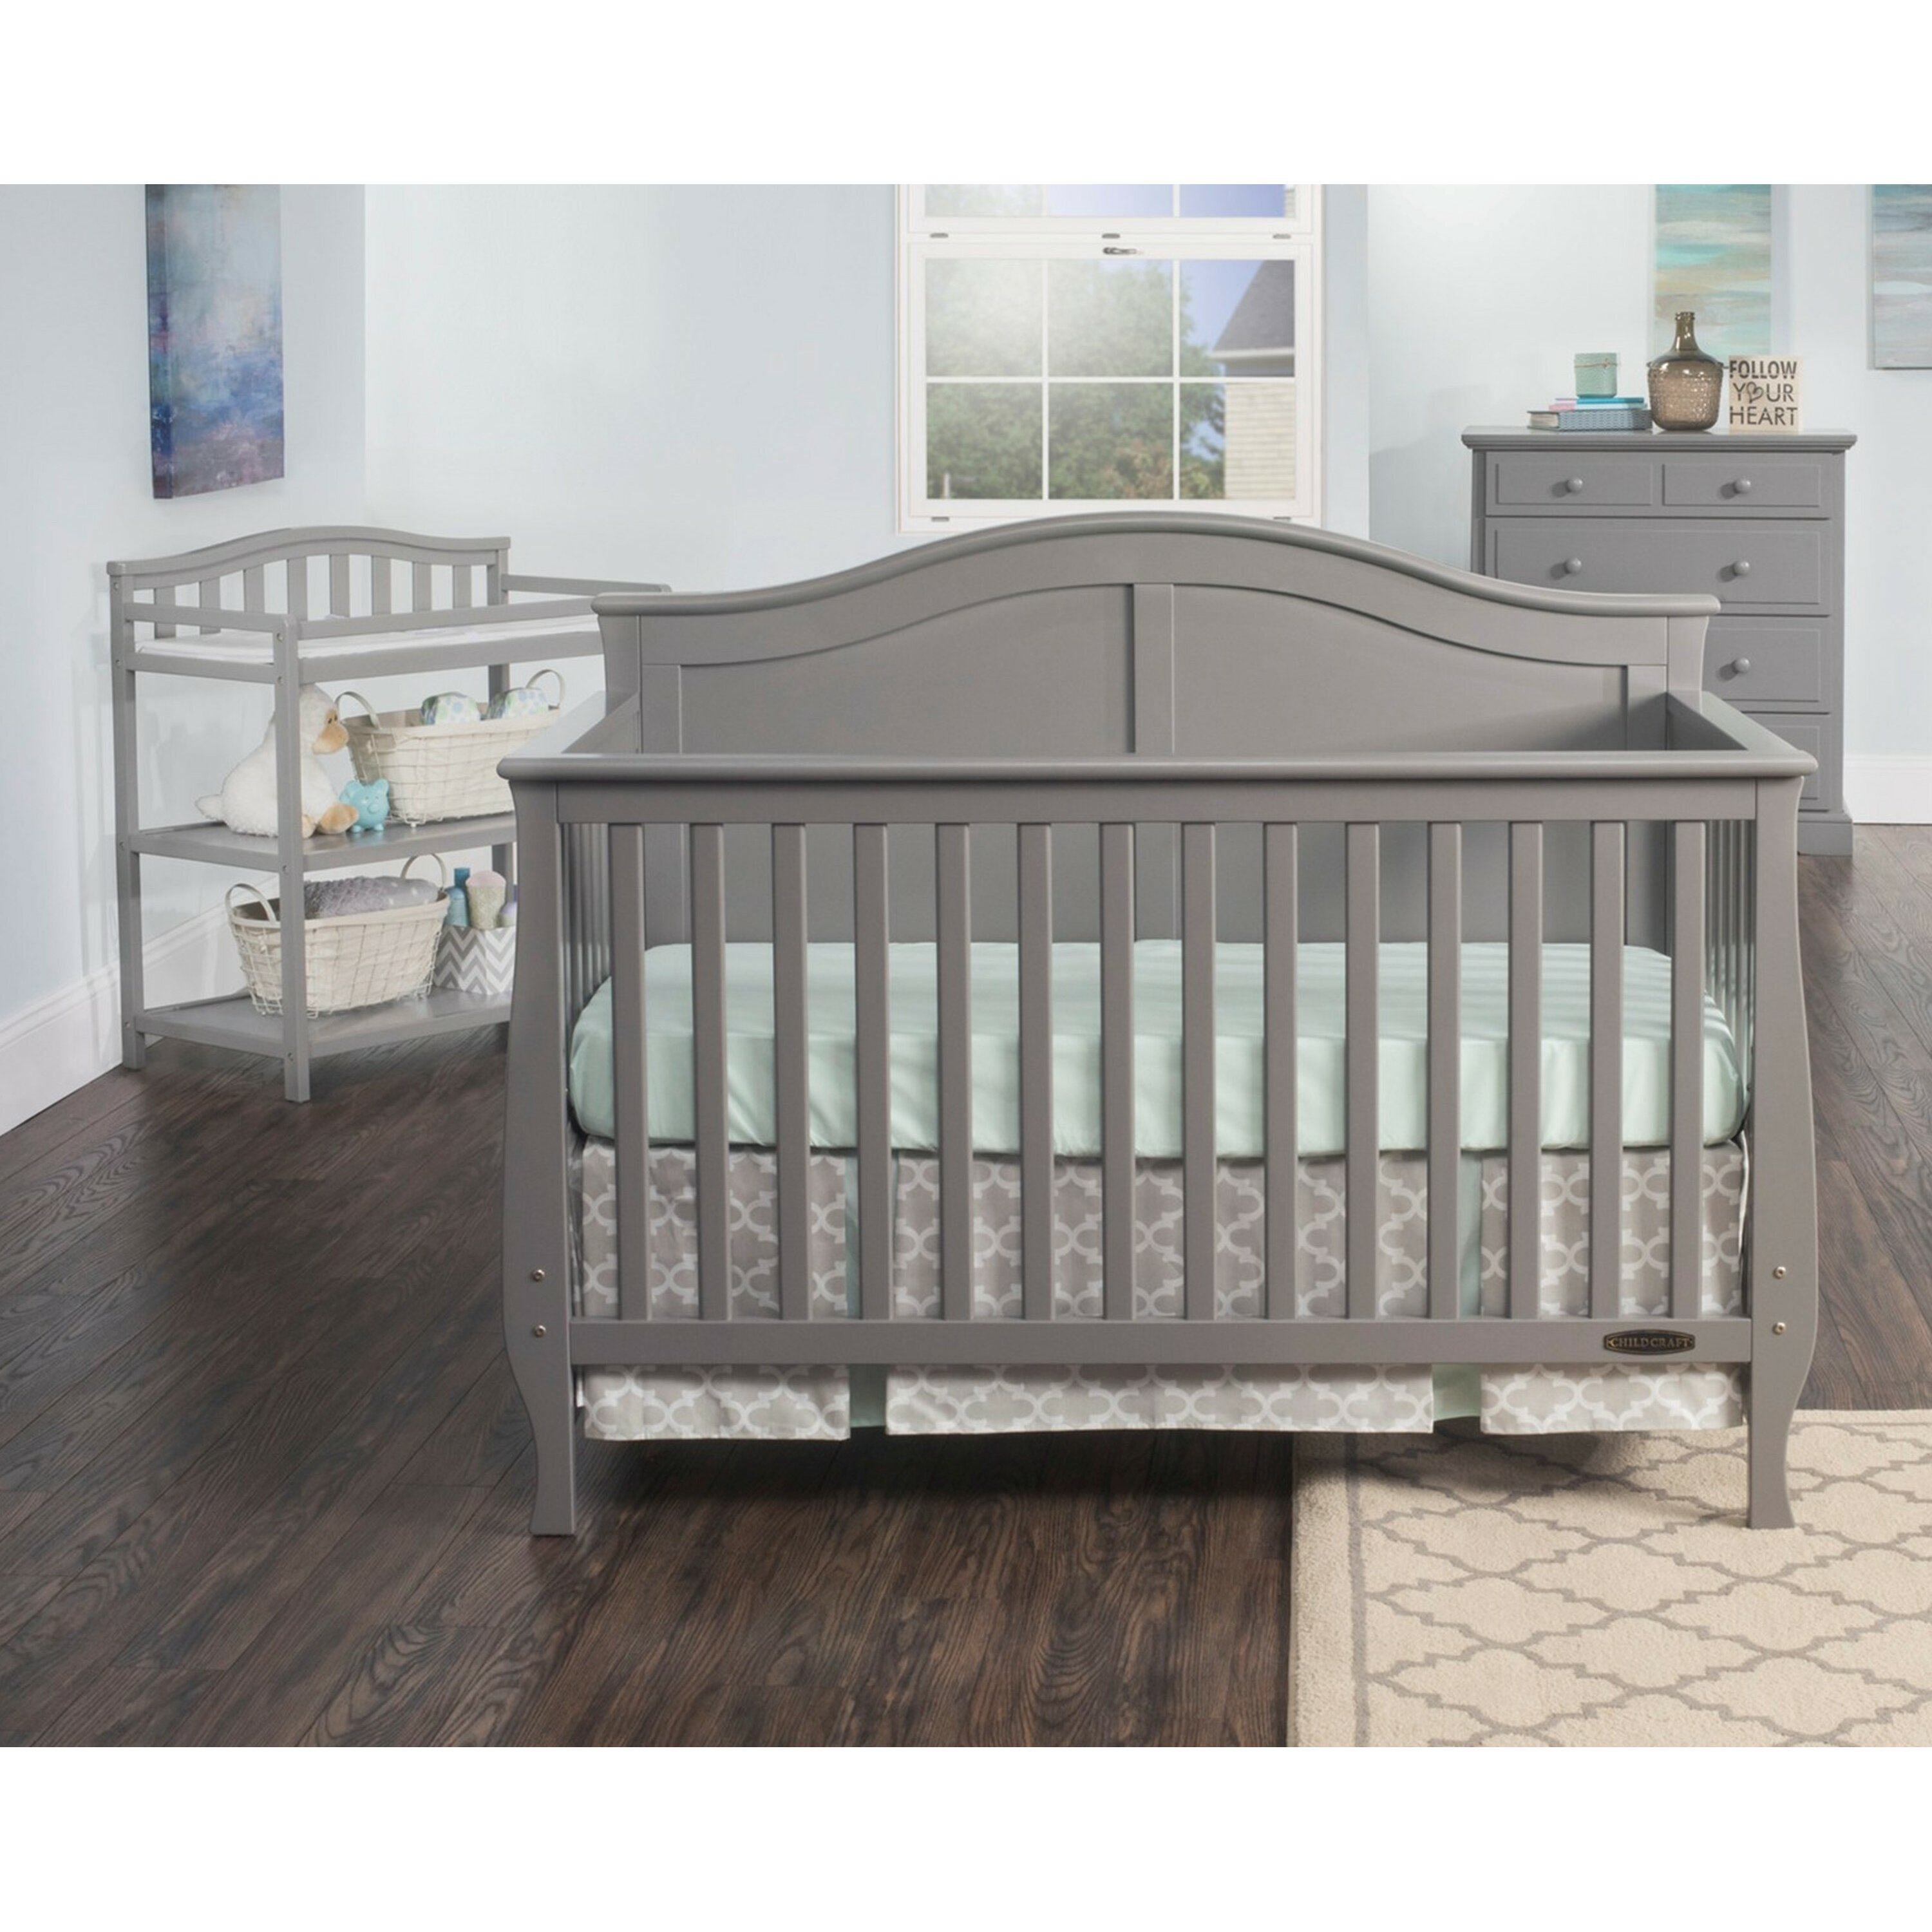 Iron crib for sale craigslist - Crib For Sale Marikina Child Craft Camden 4 In 1 Convertible Crib